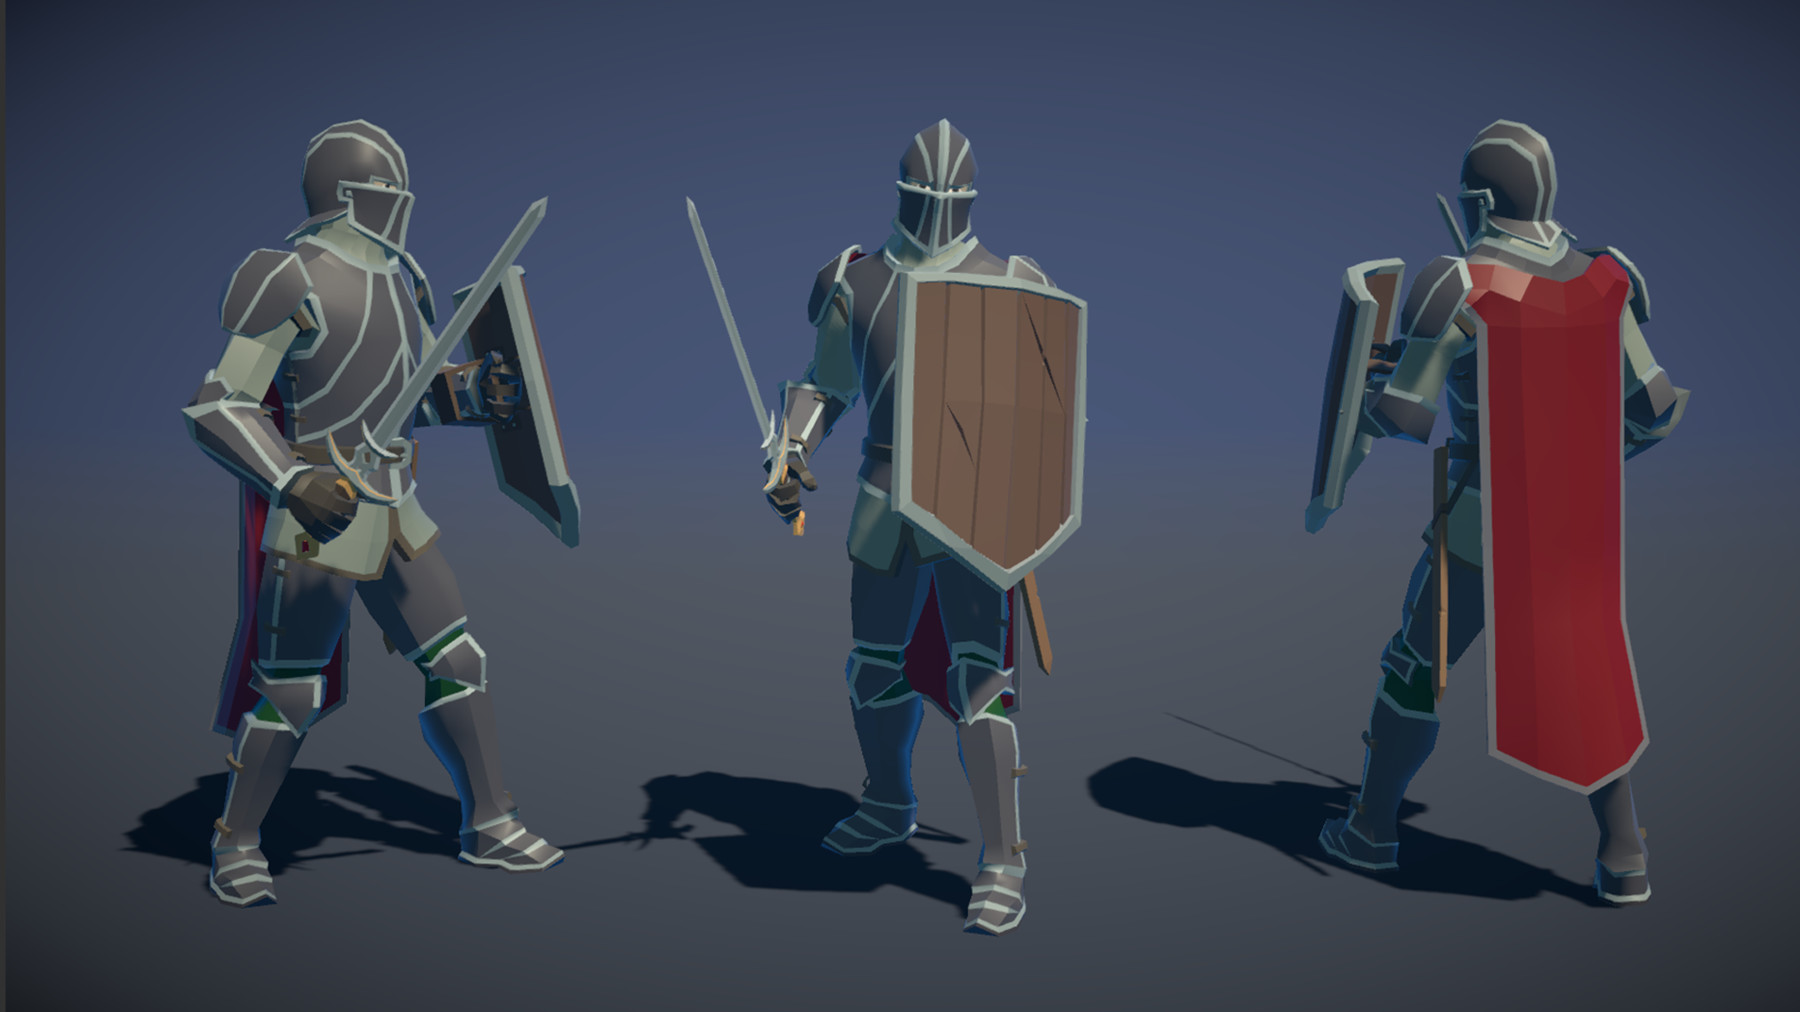 Pt medieval lowpoly characters knight 01